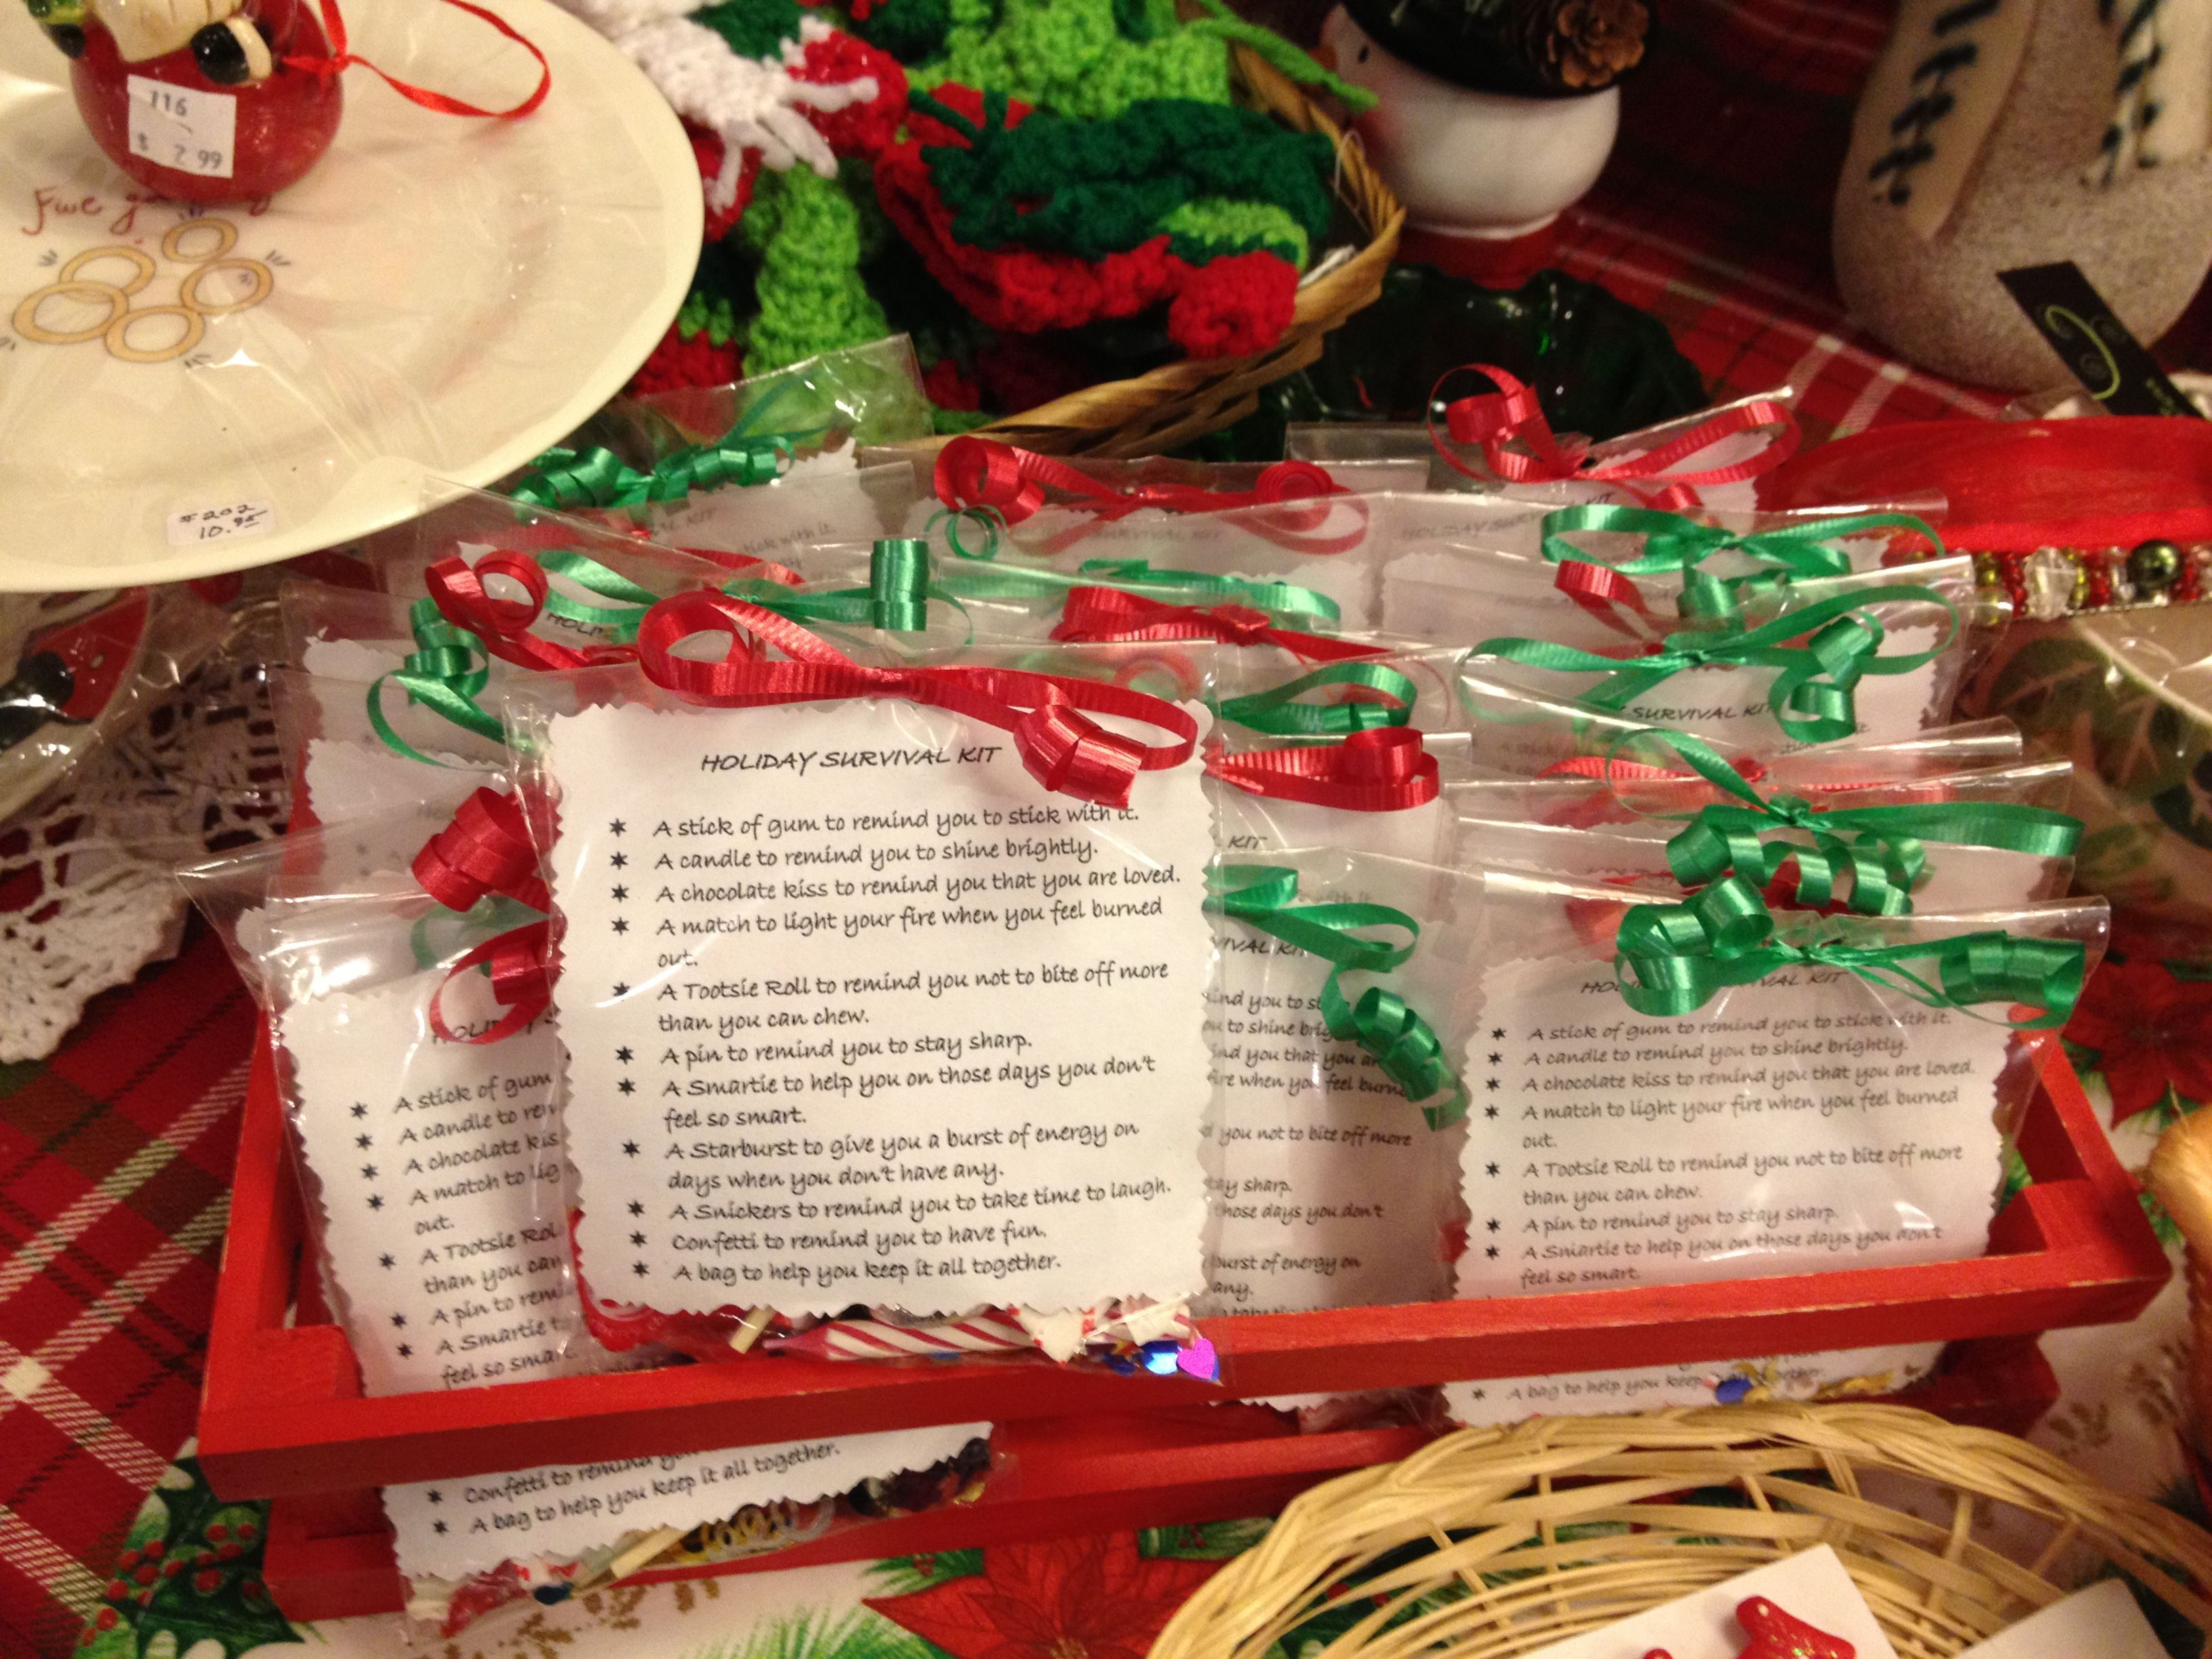 Christmas Survival Kit Survival Kit Gifts Survival Kit Themed Gift Baskets